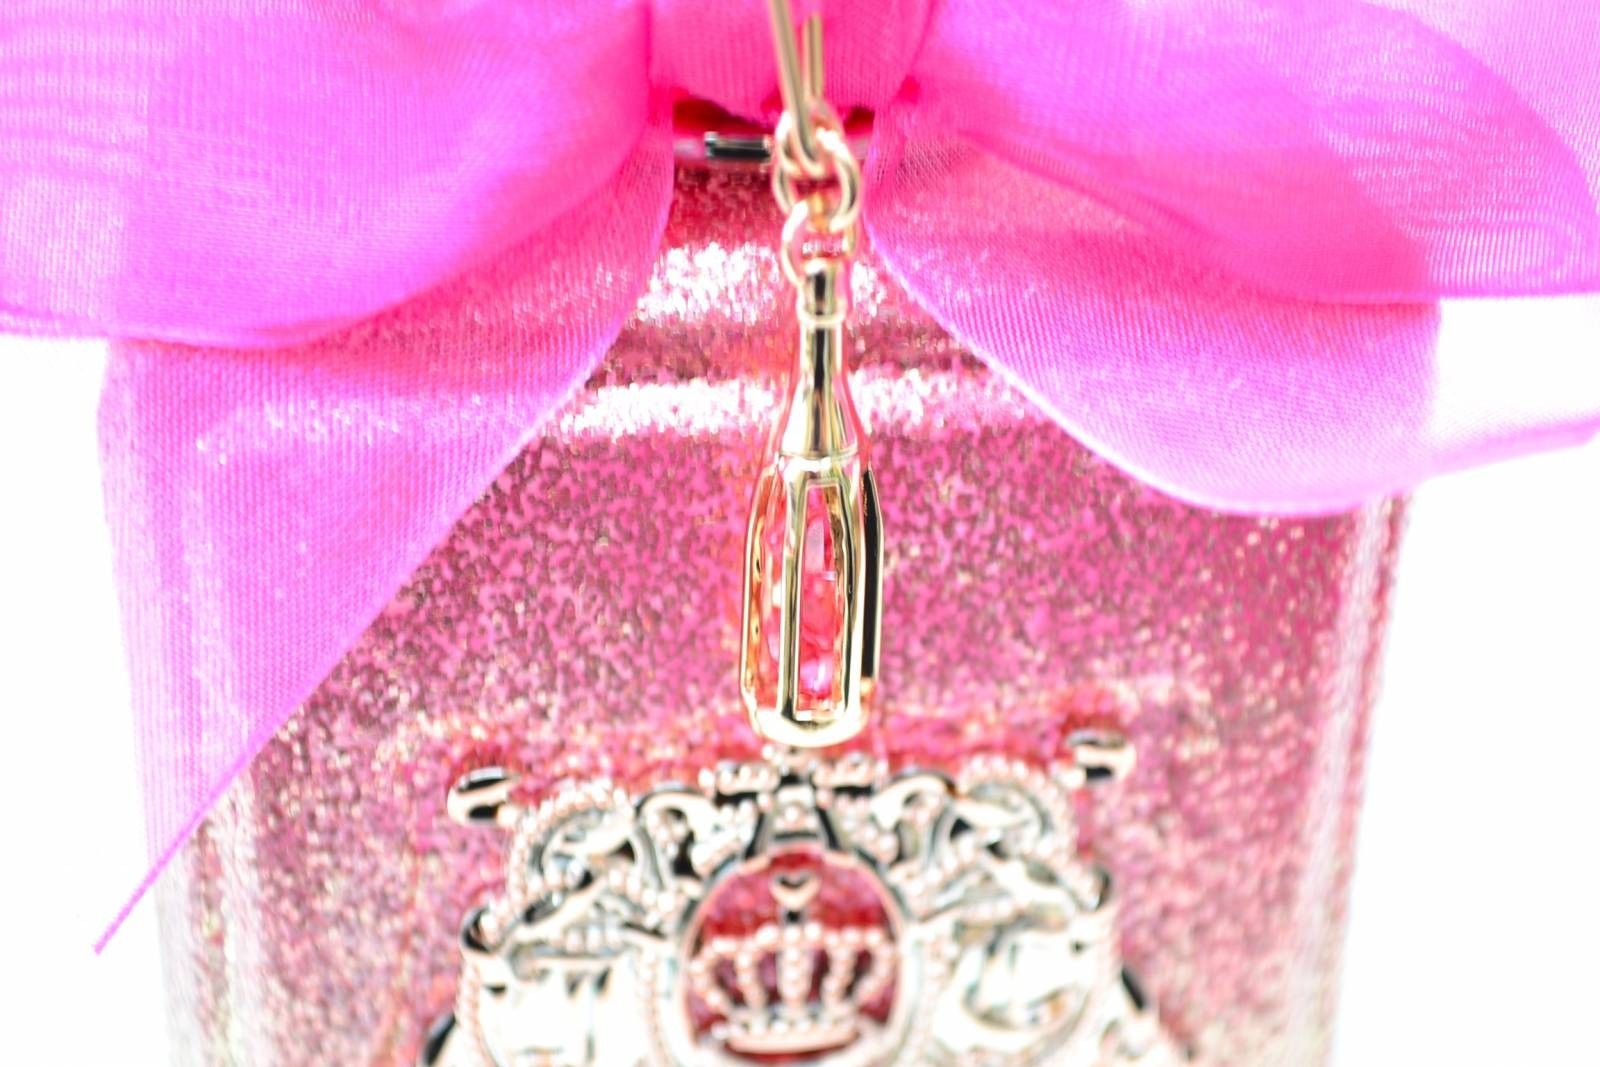 viva-la-juicy-perfume-review